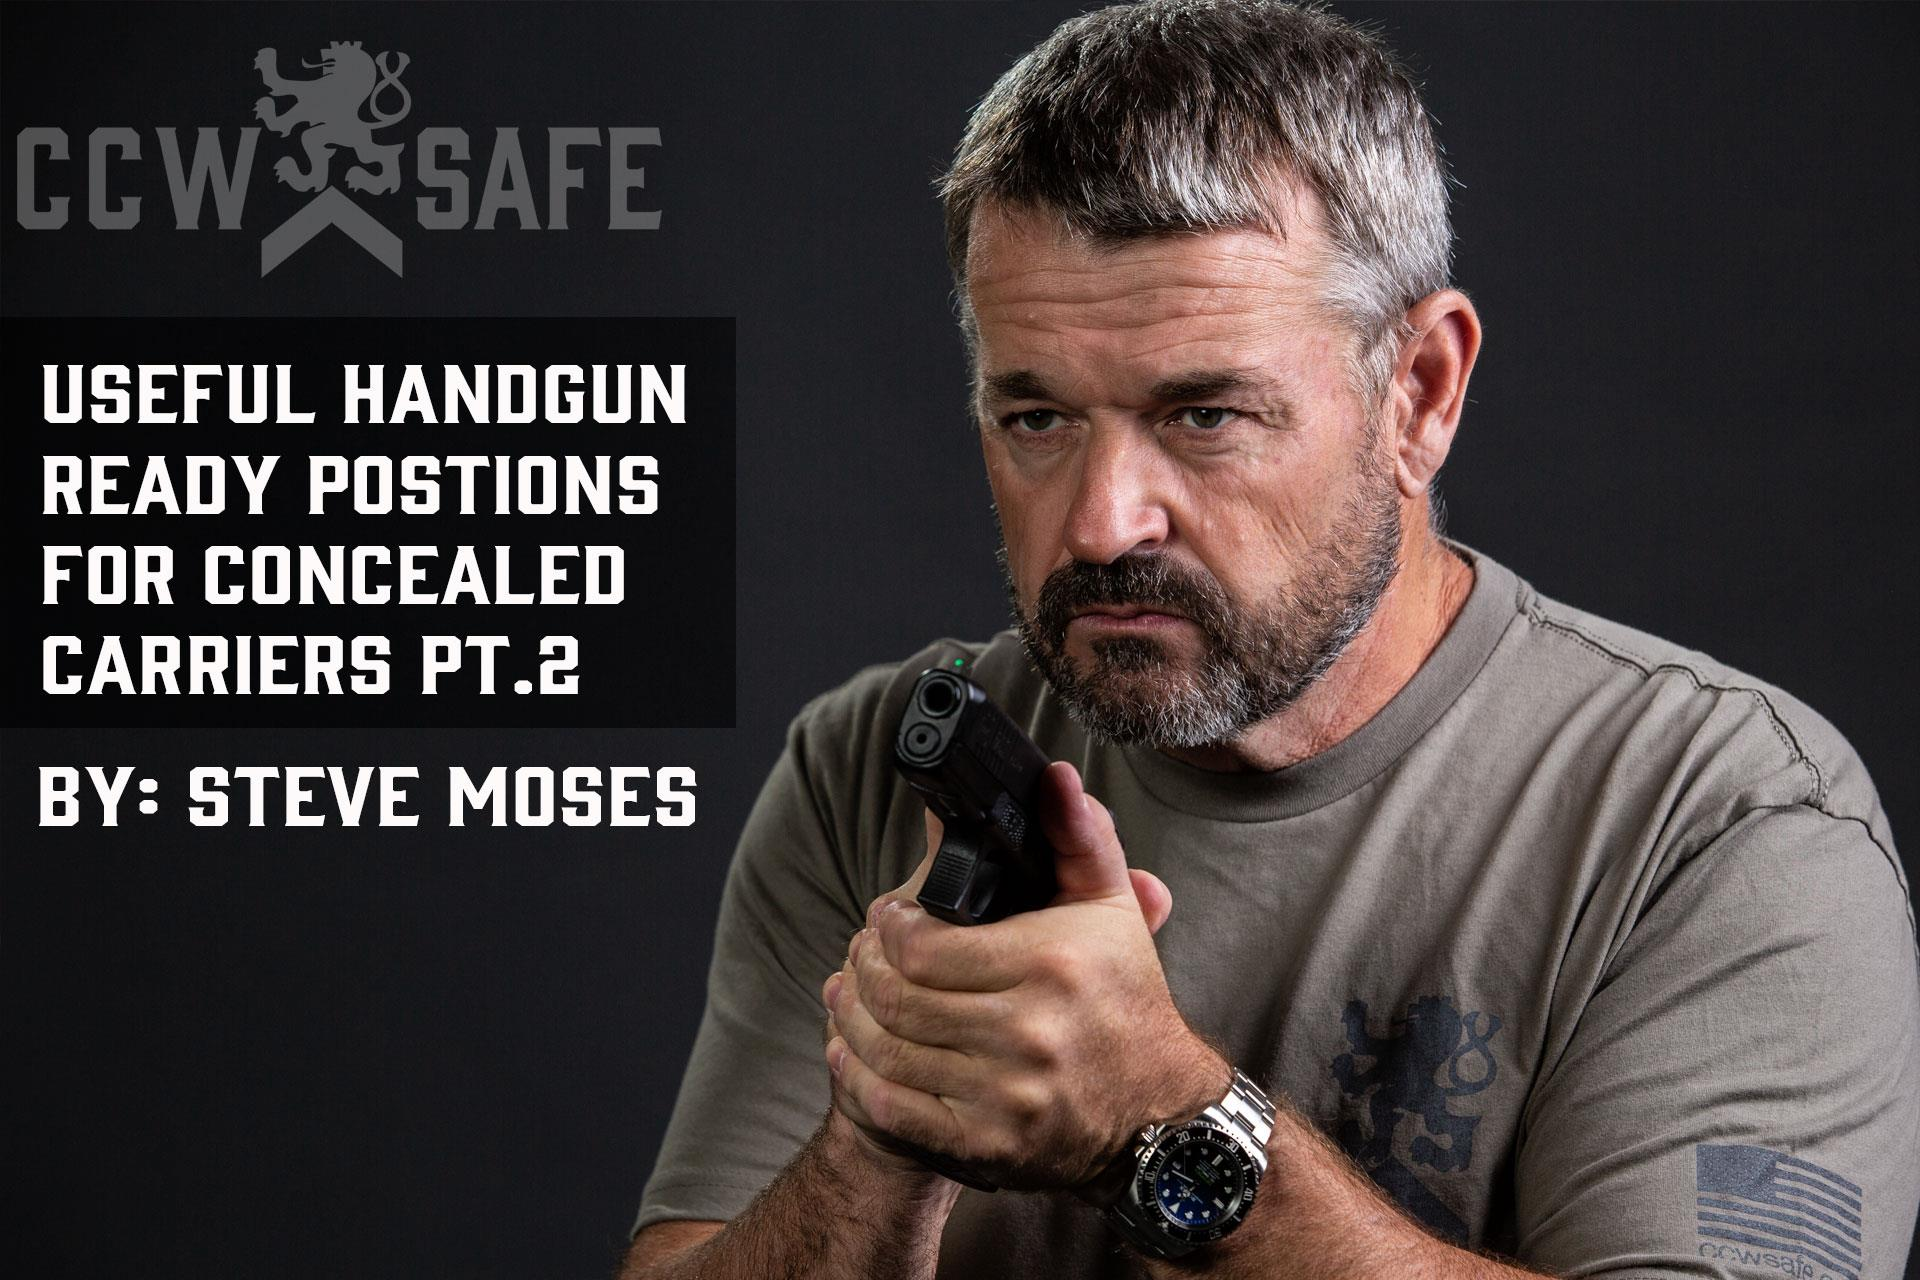 USEFUL HANDGUN READY POSITIONS FOR CONCEALED CARRIERS PT.2